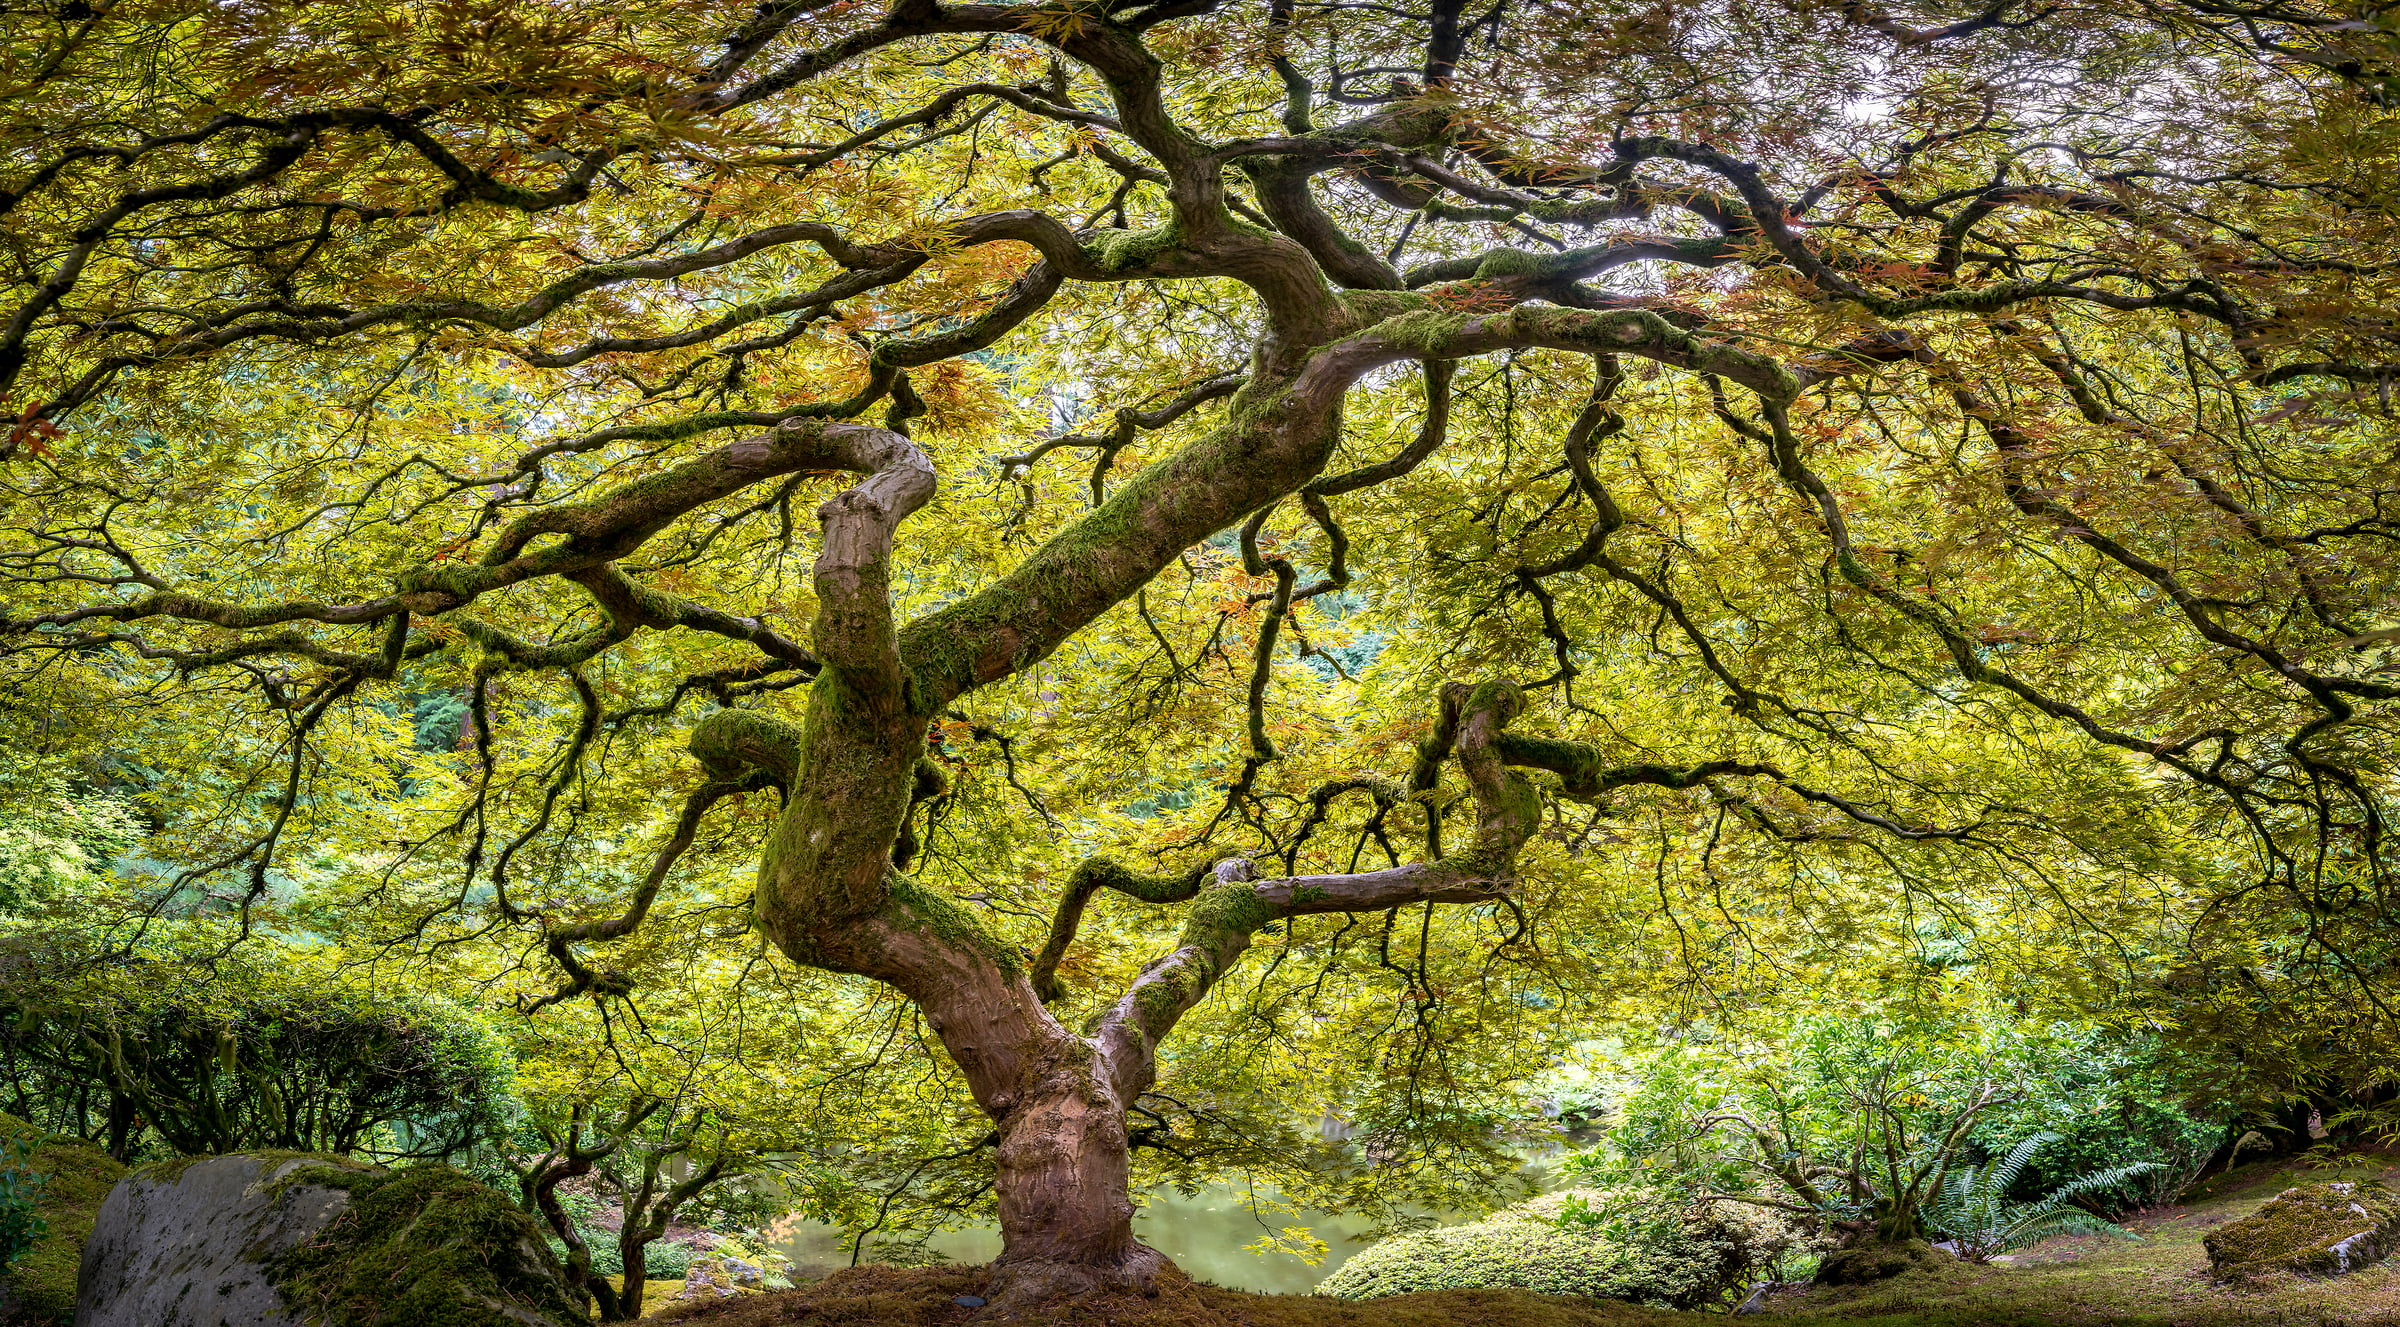 438 megapixels! A very high resolution, large-format VAST photo print of a Japanese maple tree; nature photo created by Justin Katz in the Portland Japanese Garden in Oregon